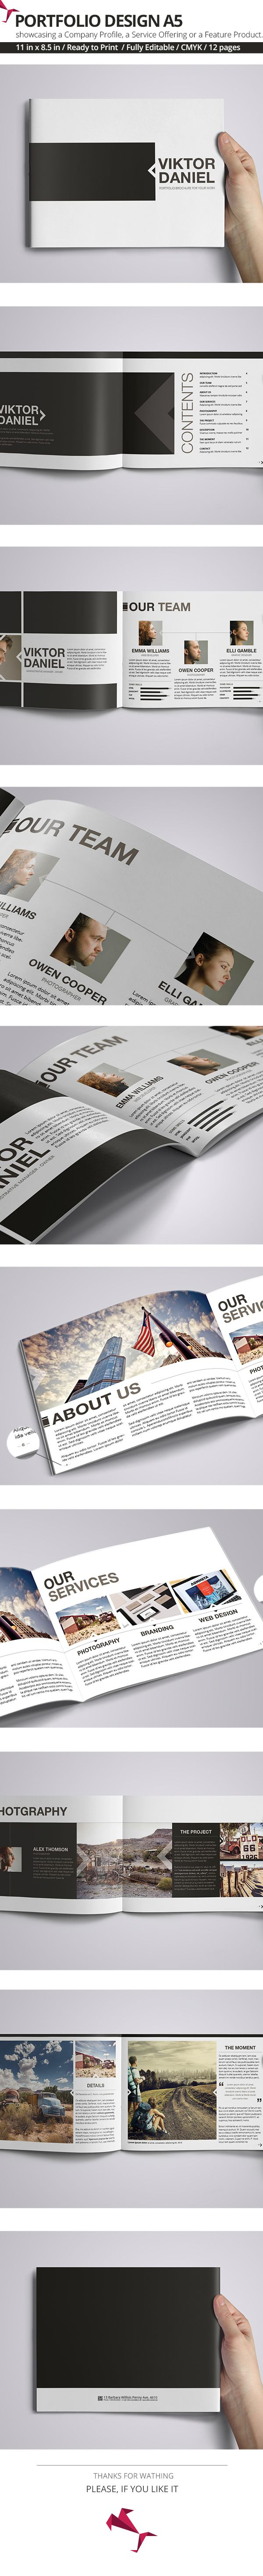 Viktor Daniel Portfolio Design A5 is a personal portfolio Indesign template, is a unique way of showcasing your work in a magazine style. You can insert Your own brands, images, text & change color of portfolio. This Indesign Files are Fully Editable. You…